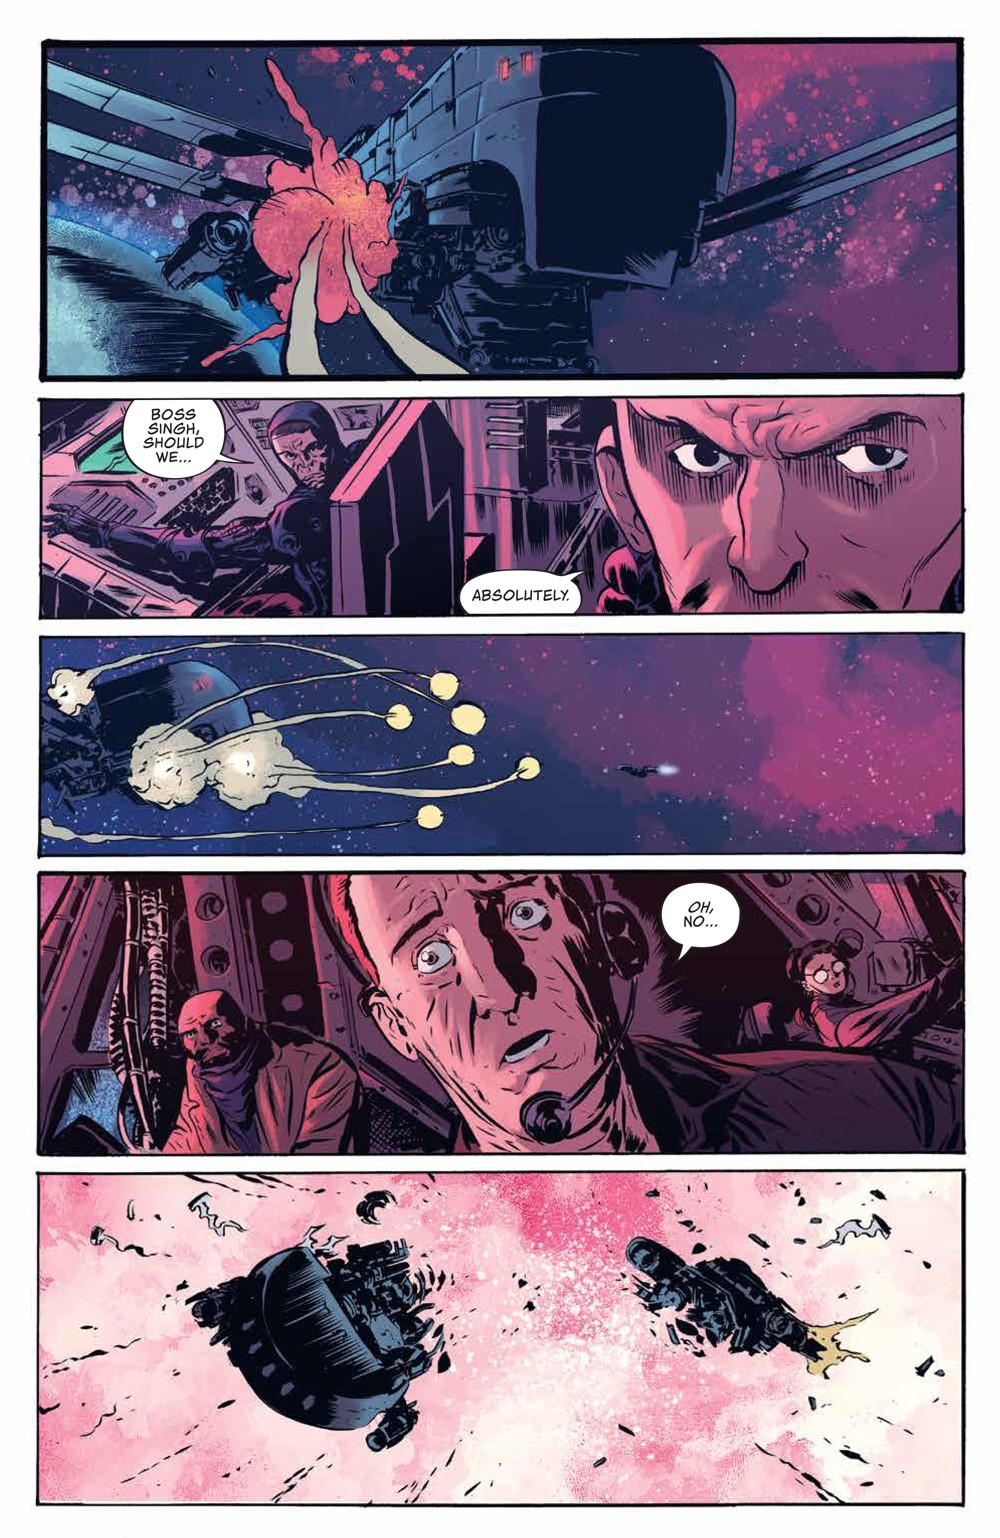 Firefly_v3_SC_PRESS_16 ComicList Previews: FIREFLY THE UNIFICATION WAR VOLUME 3 TP